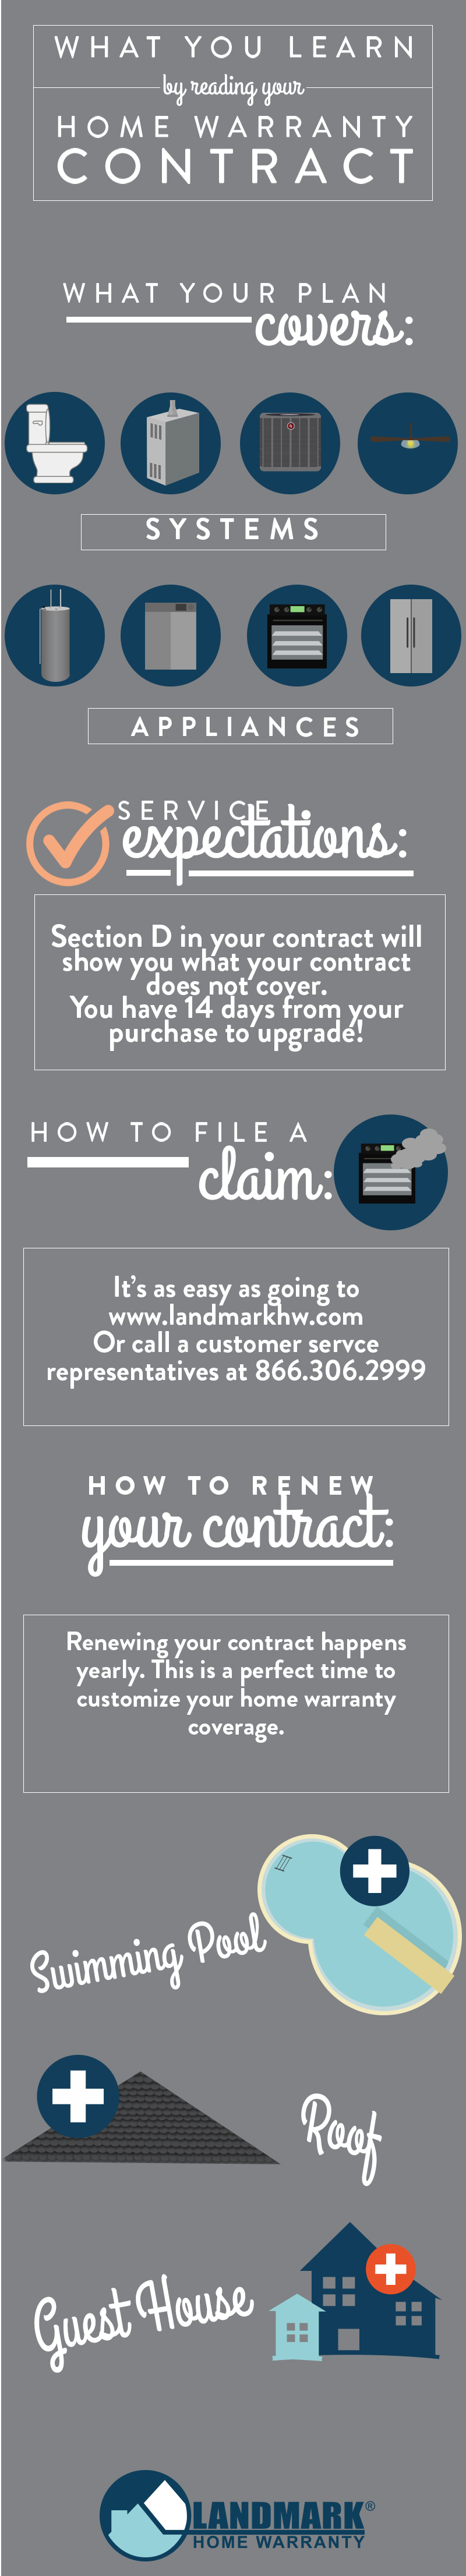 Infographic explaining what information you will find within your home warranty contract when you read it.